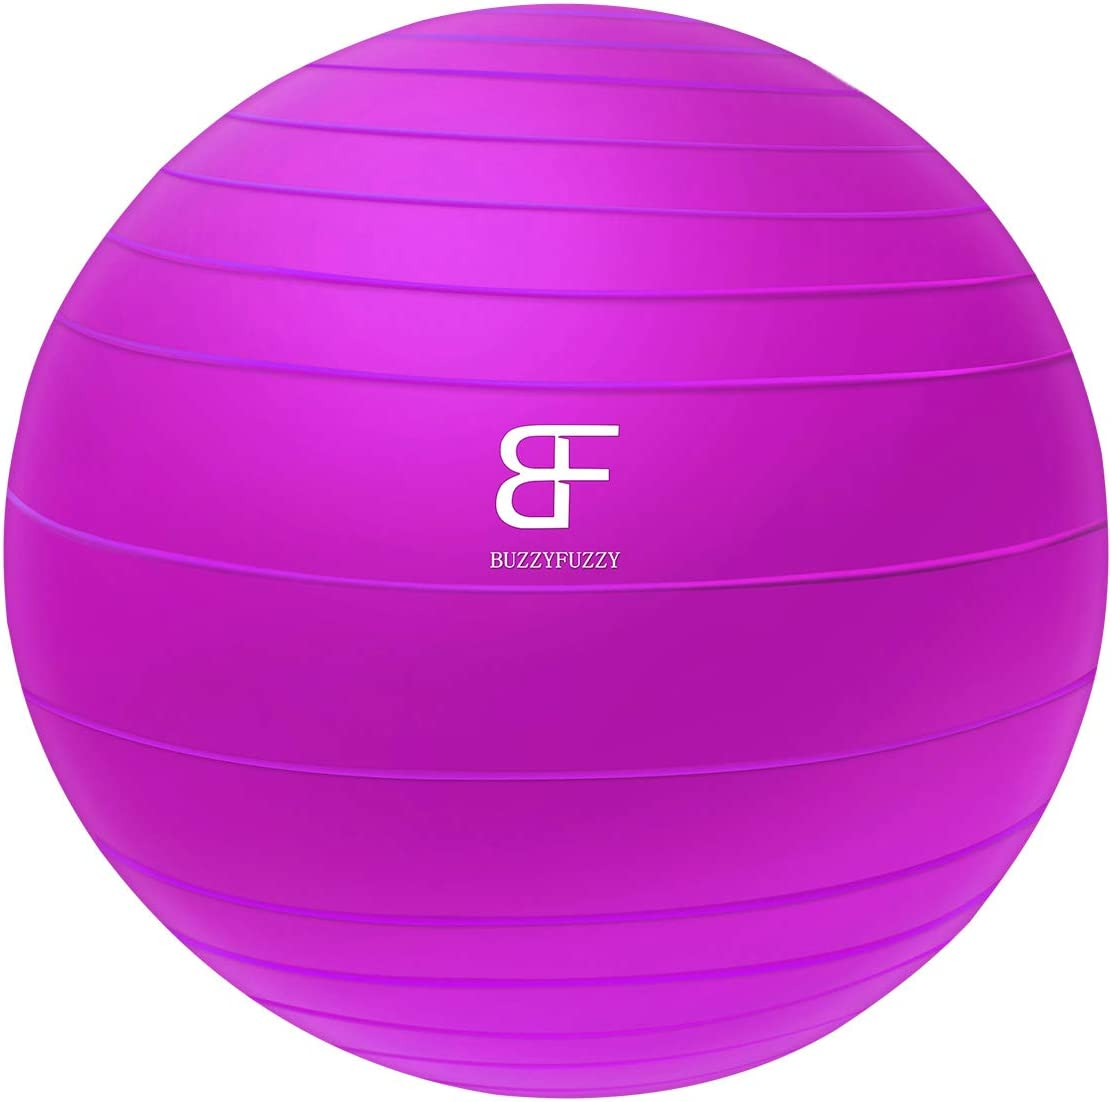 buzzyfuzzy 65 cm Exercise Ball Perfect for Balance/Yoga/Pilates/Strength core Training,Suit for Home Gym/Office Yoga Ball Desk Chair with Quick Pump